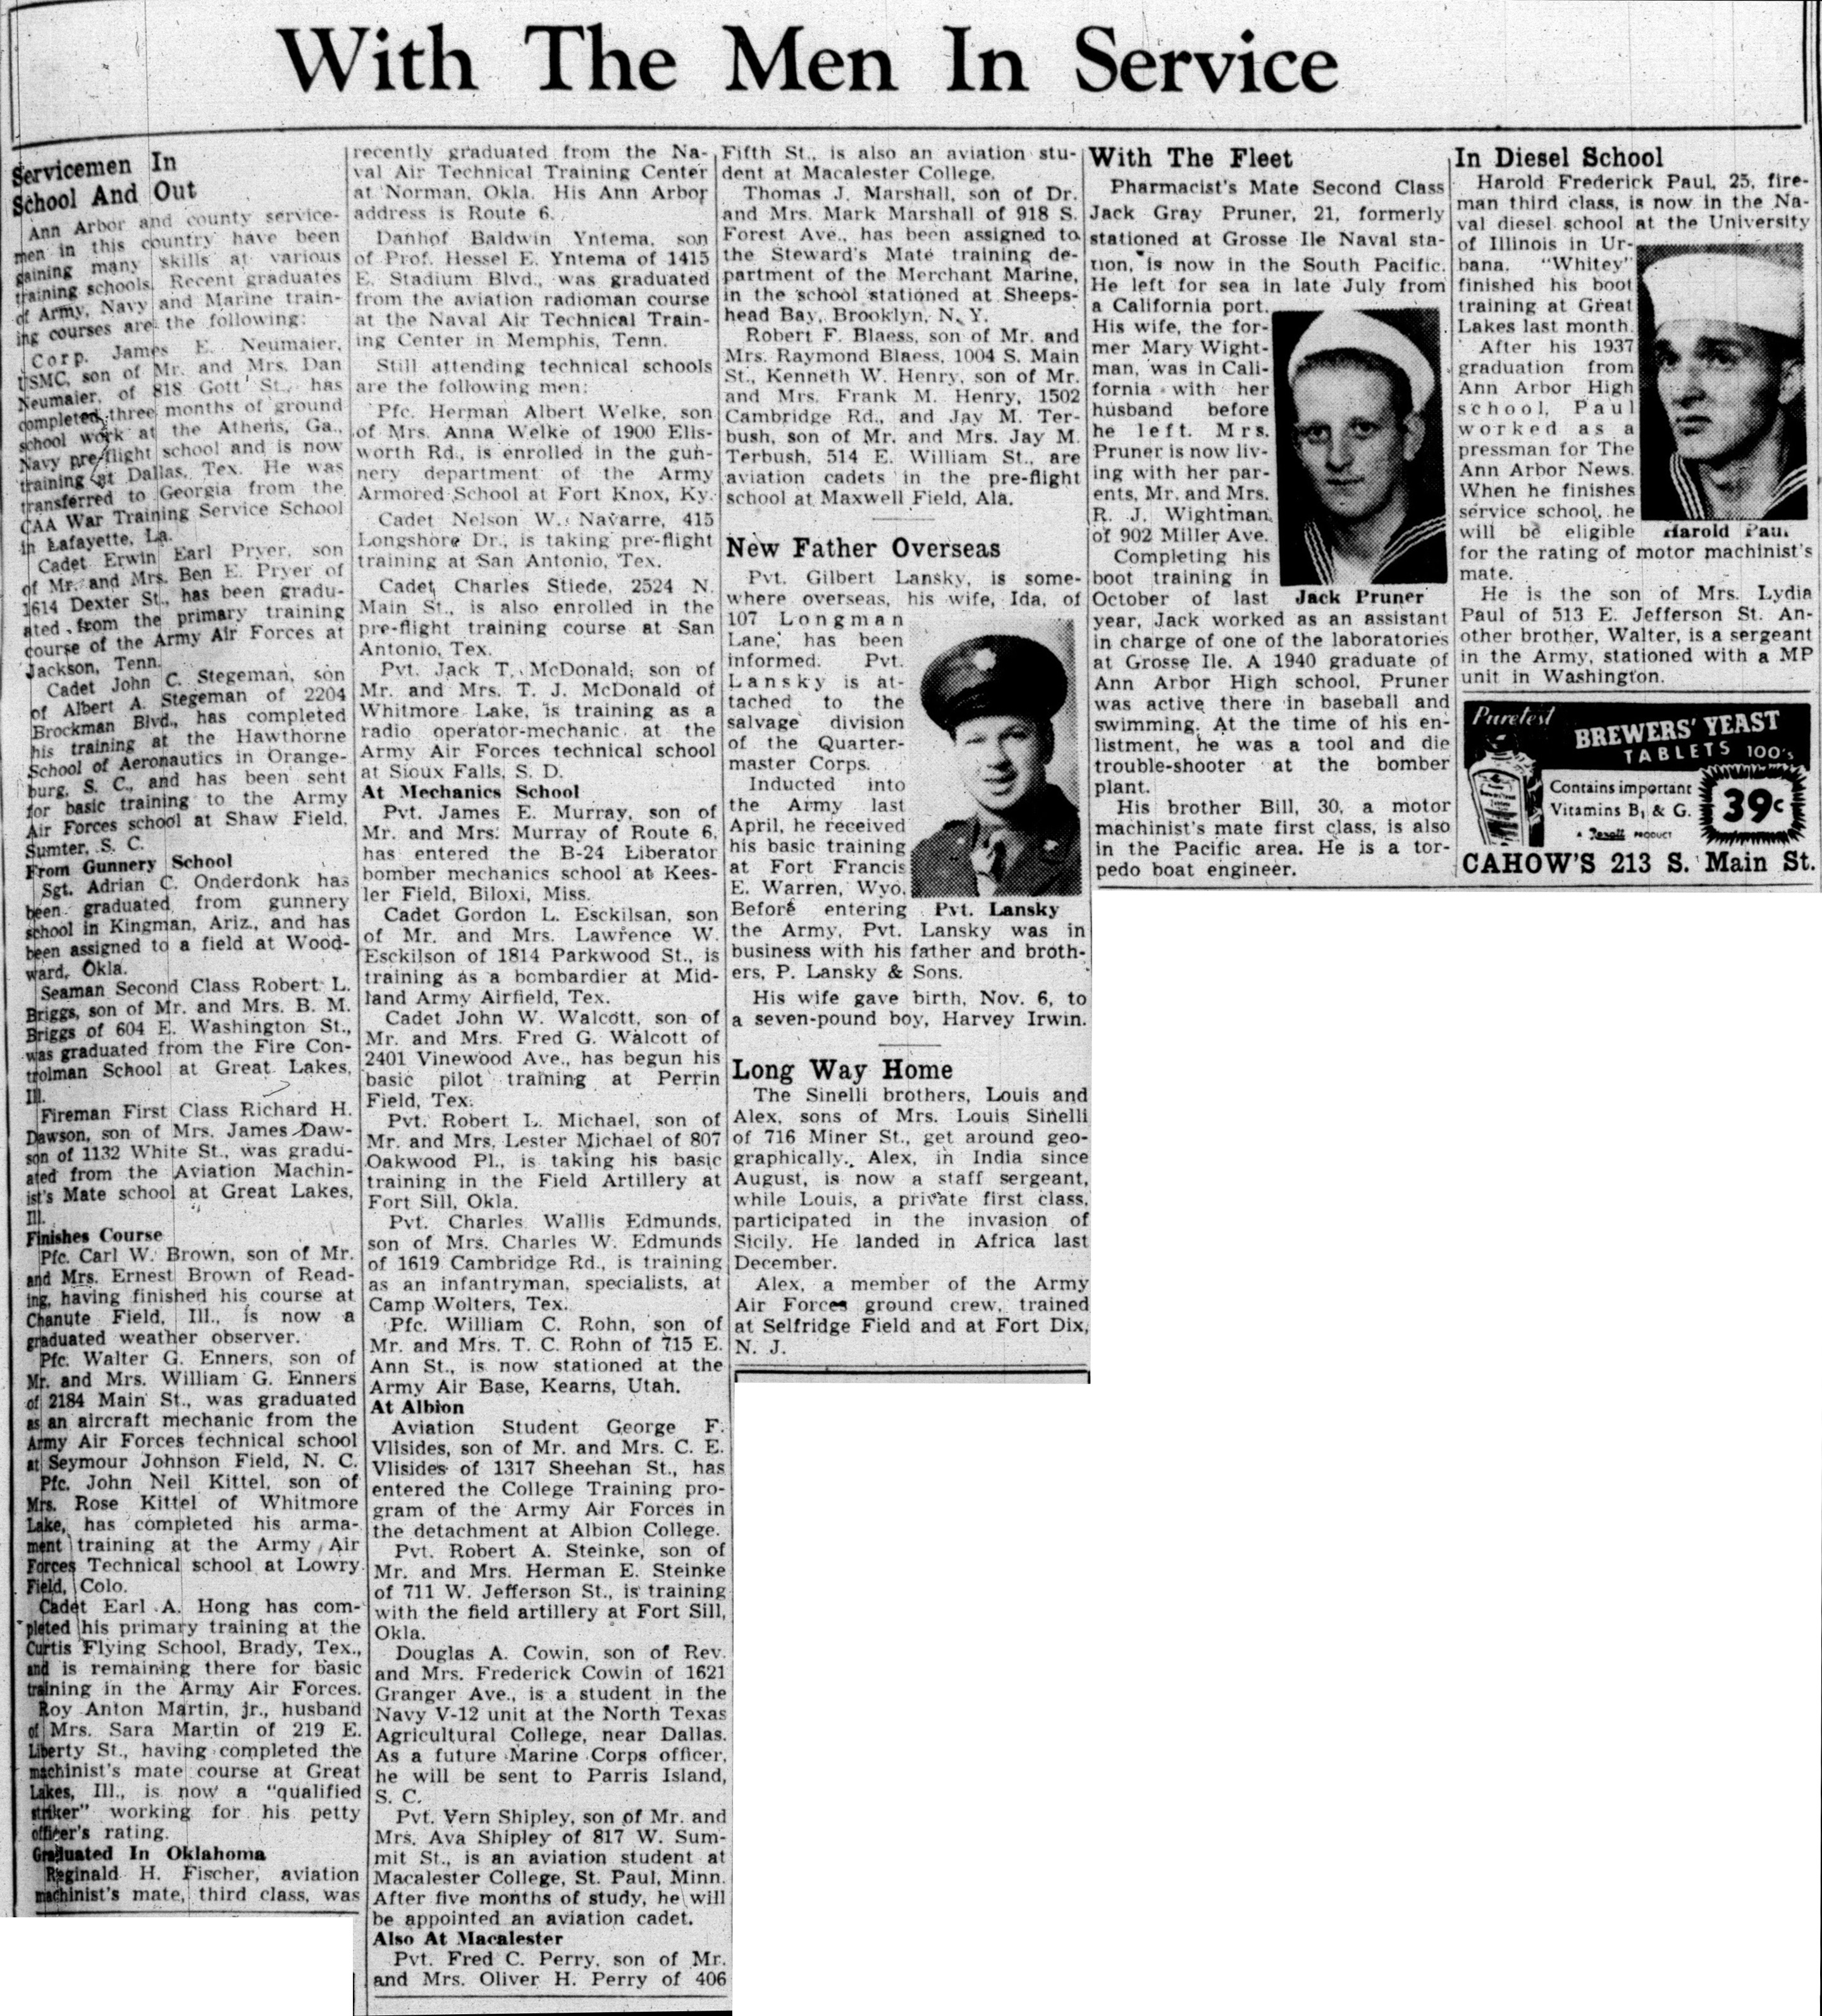 With The Men In Service: November 17, 1943 image